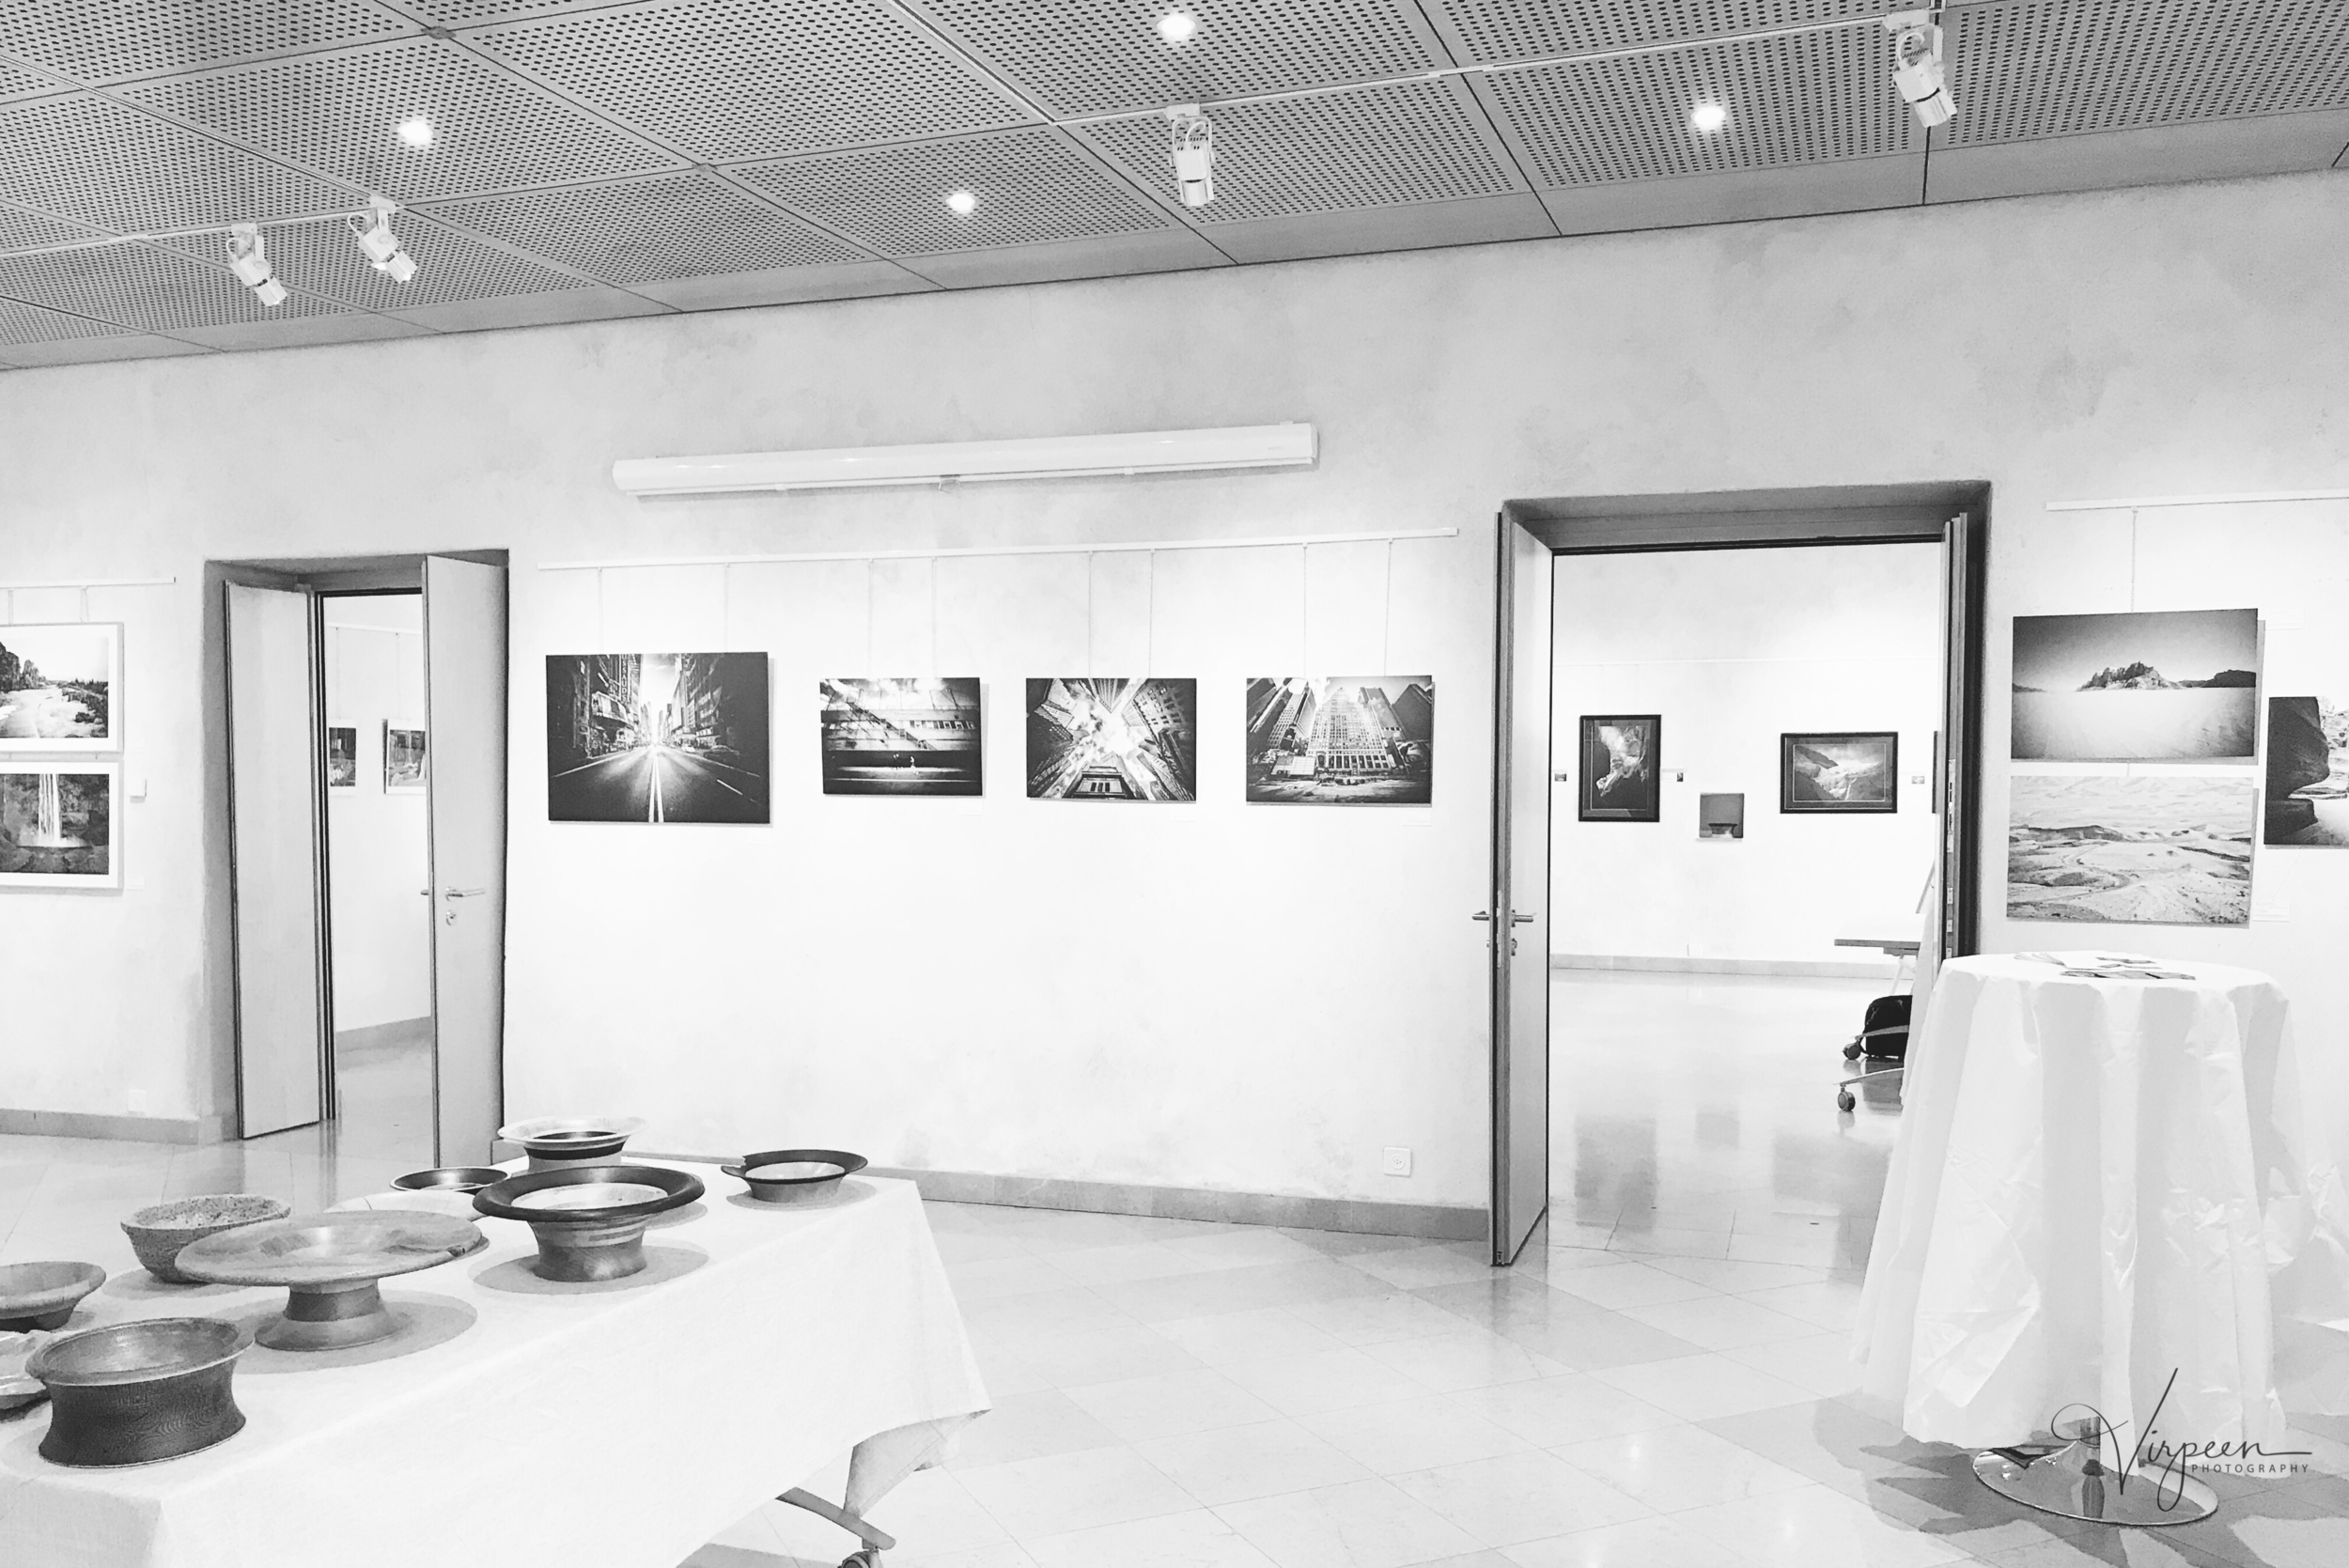 Exposition - Exhibition